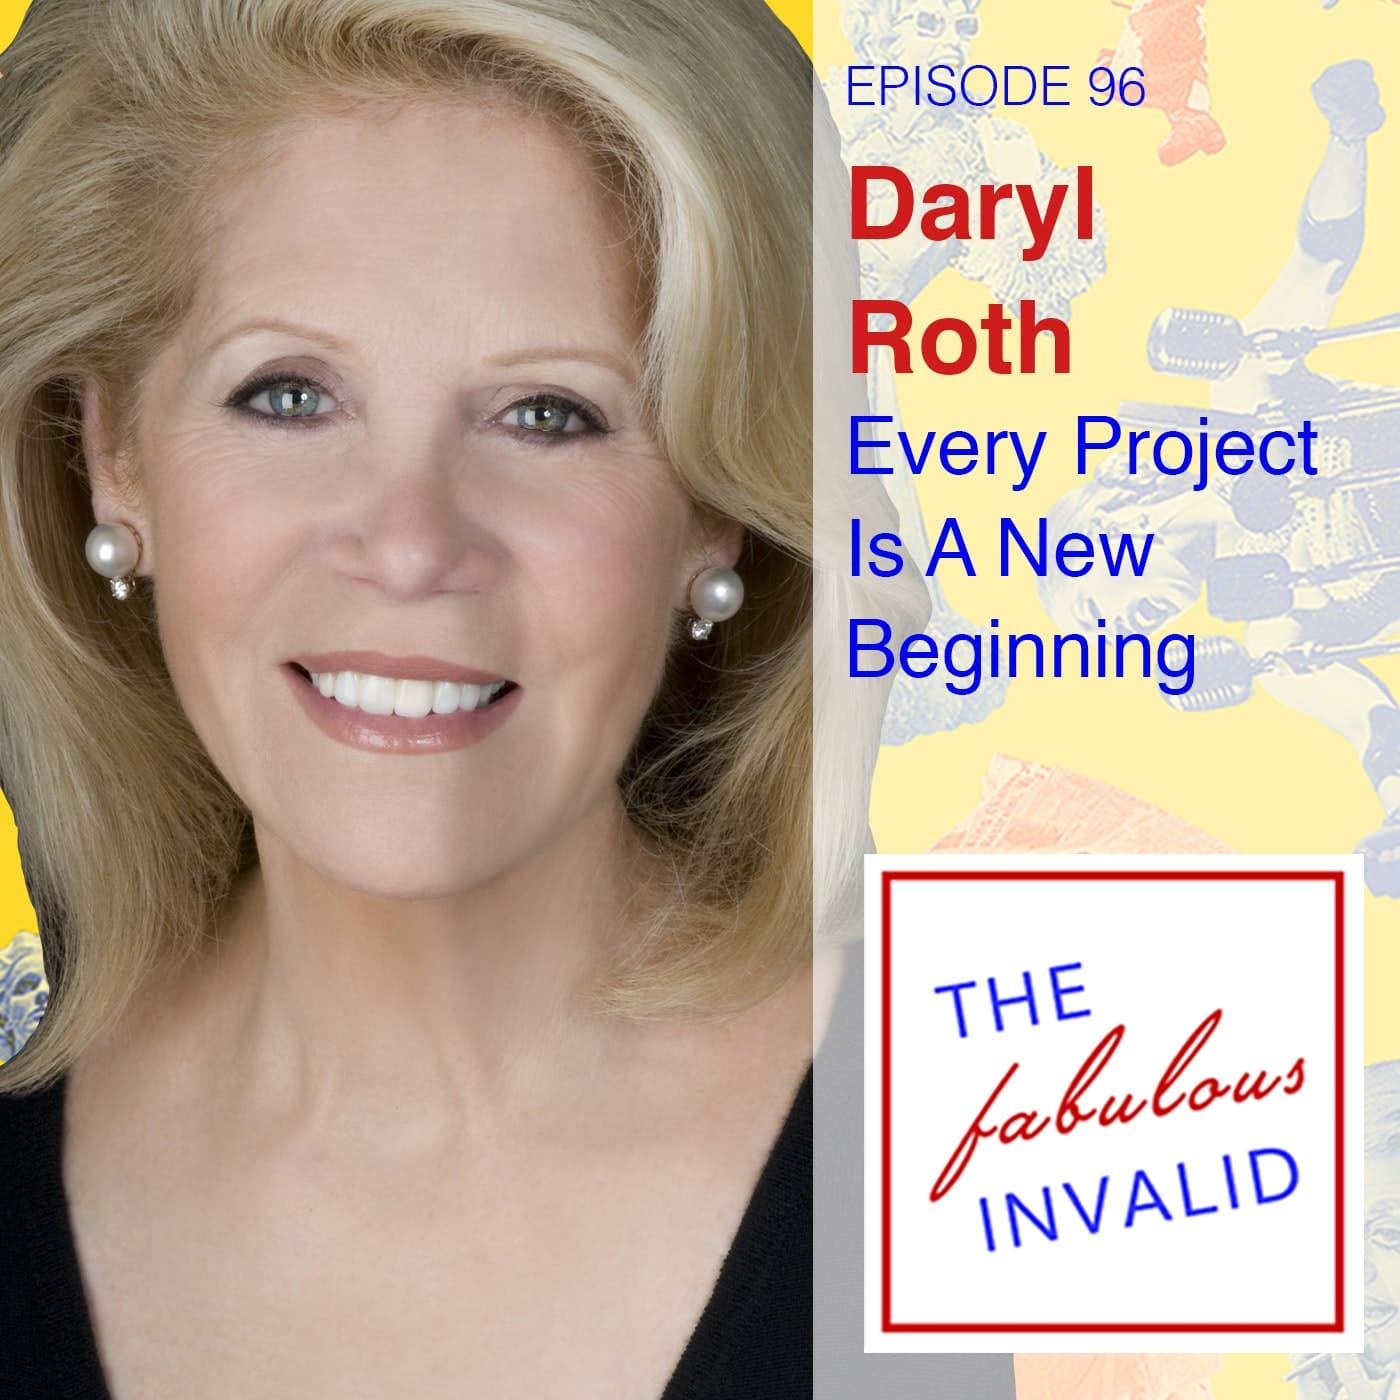 Episode 96: Daryl Roth: Every Project is a New Beginning